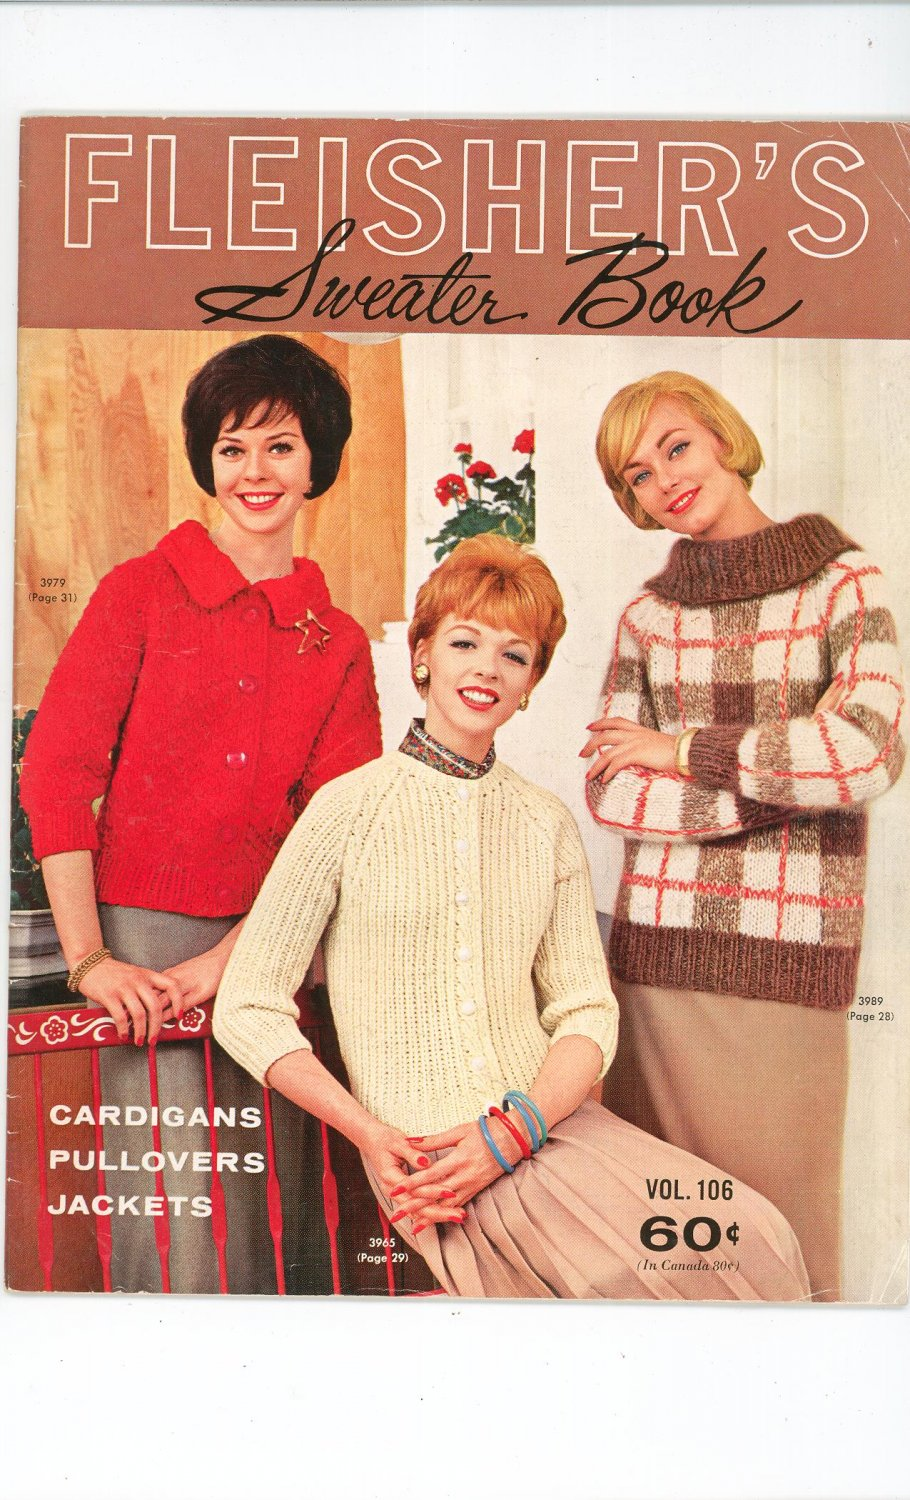 Fleisher's Sweater Book Vol. 106 Knitting Vintage Cardigans Pullovers Jackets